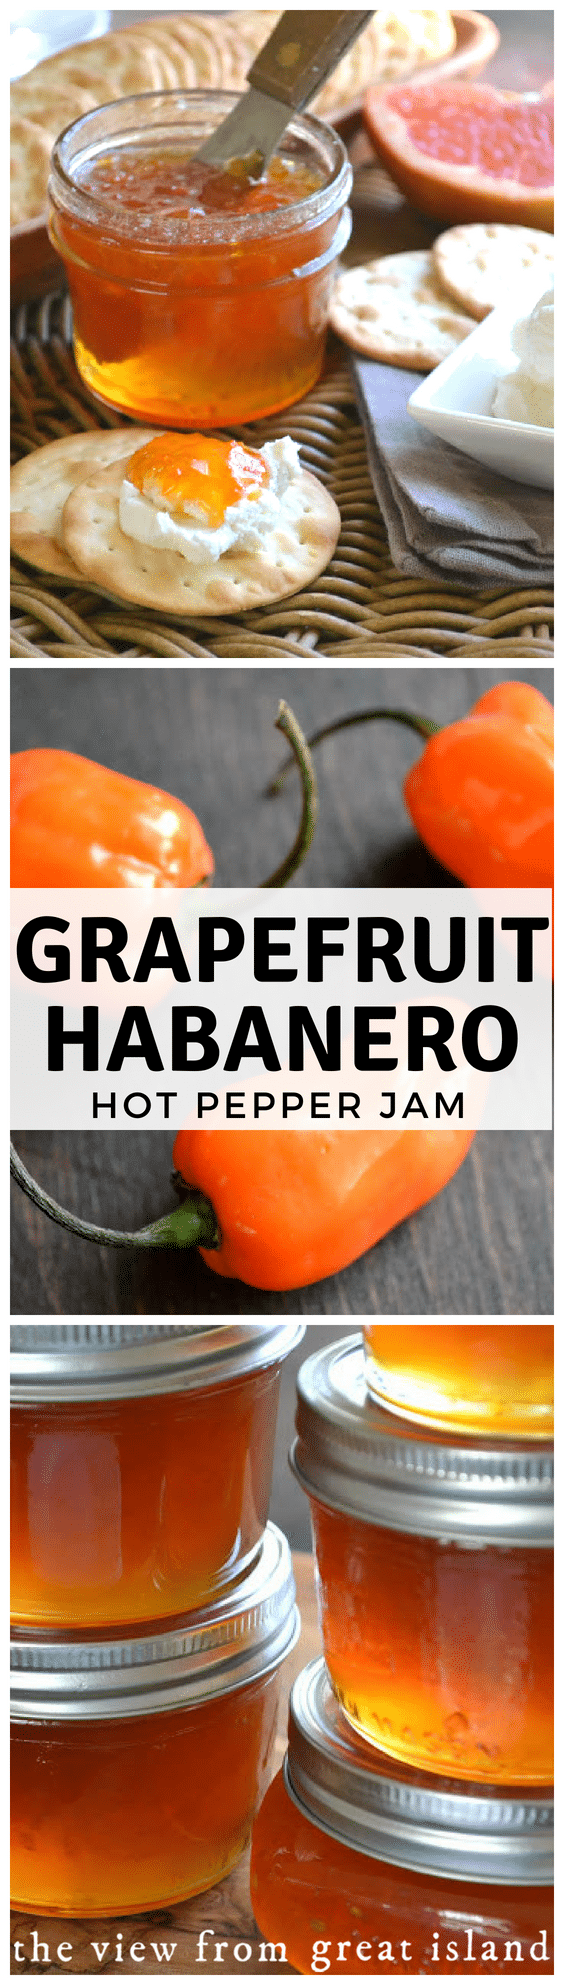 Pink Grapefruit Habanero jam is a unique hot pepper jam with an irresistible sweet hot flavor...pair it with some cream cheese and crackers for the best appetizer ever.  #appetizer #jam #recipe #easy #grapefruit #habanero #smallbatch #refrigerator #freezer #citrus #jelly